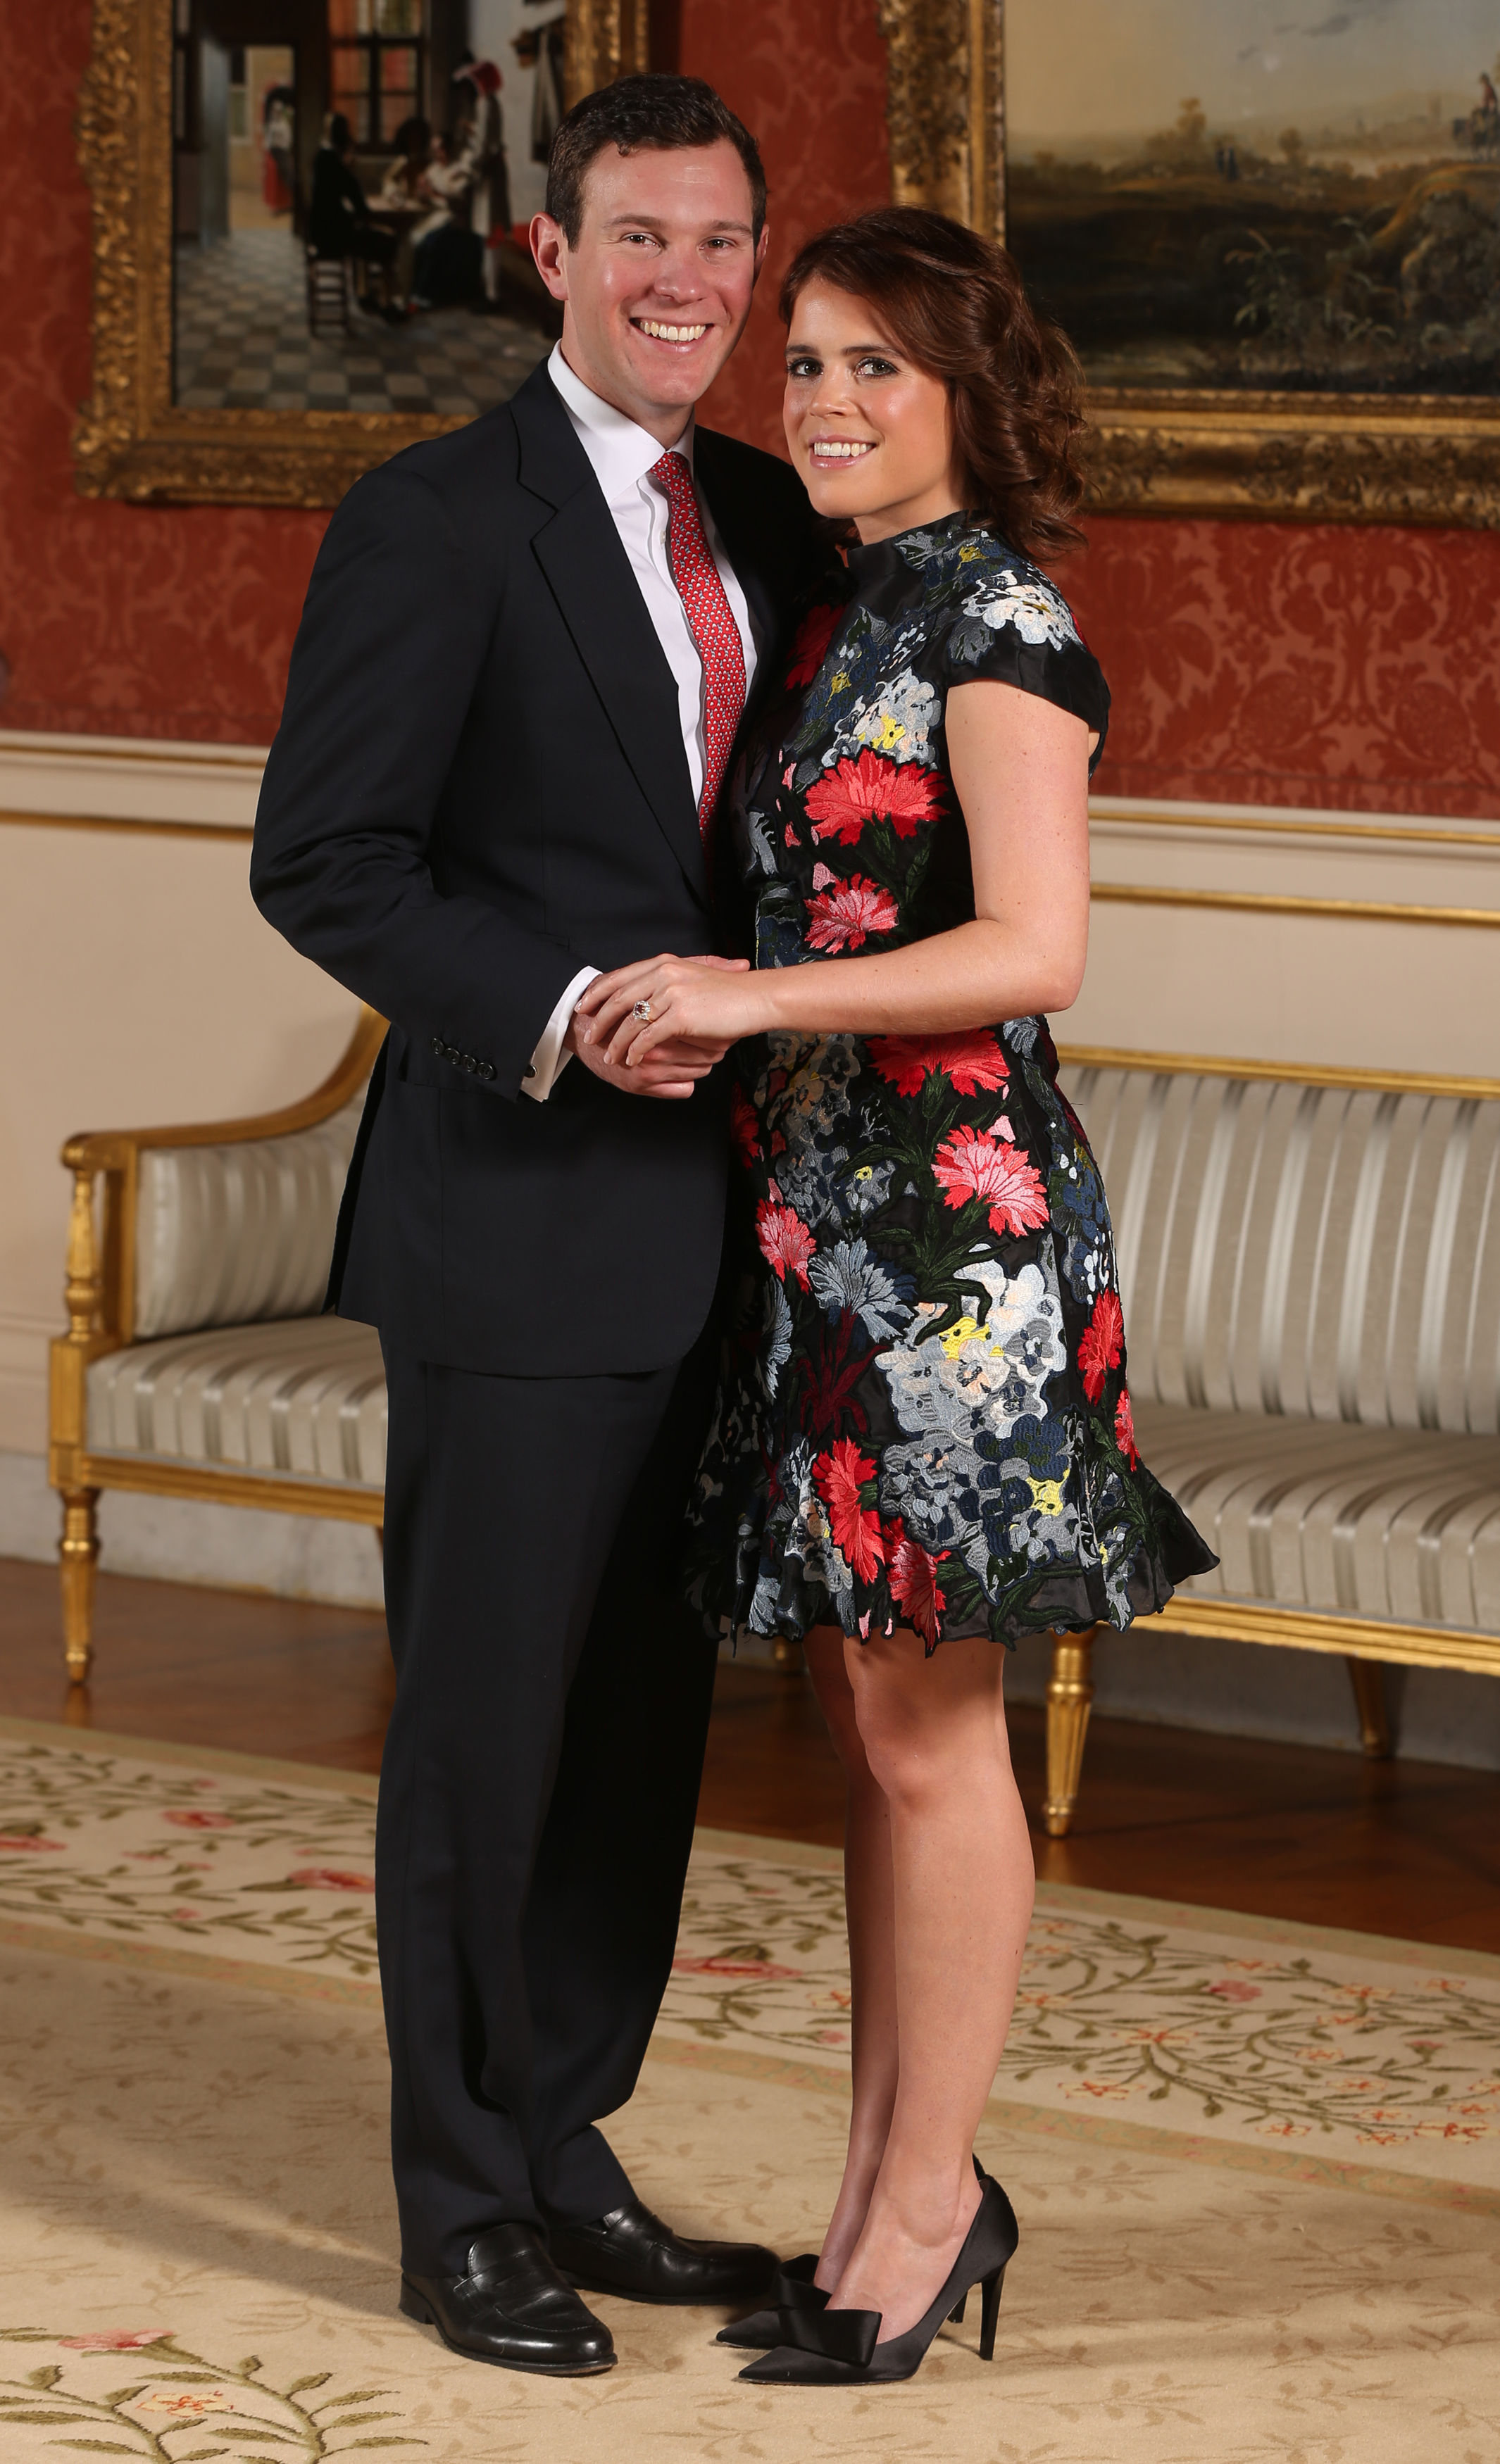 Princess Eugenie and Jack Brooksbank in the Picture Gallery at Buckingham Palace after they announced their engagement. Princess Eugenie wears a dress by Erdem, shoes by Jimmy Choo and a ring containing a padparadscha sapphire surrounded by diamonds on January 22, 2018, in London, England. They are to marry at St George's Chapel in Windsor Castle in the autumn this year. (Getty Images)